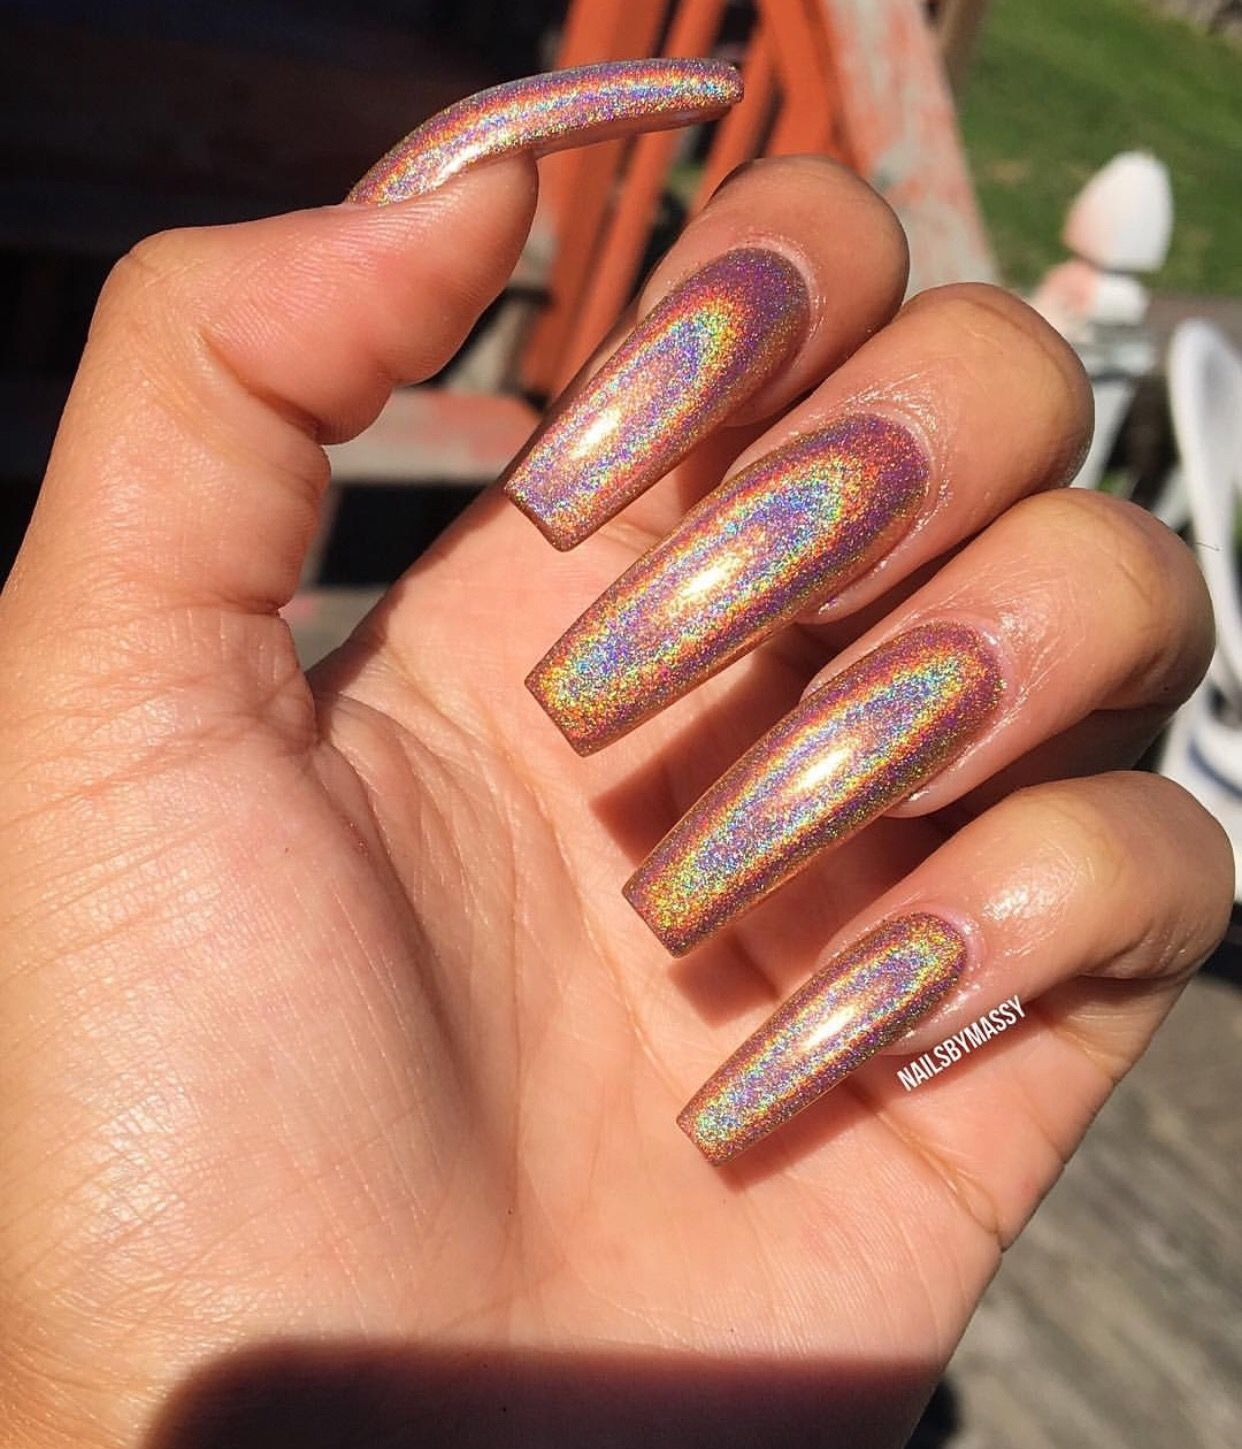 Pin by GARIAN👑 on nailed it.✓ ♥ | Pinterest | Nail inspo, Makeup ...